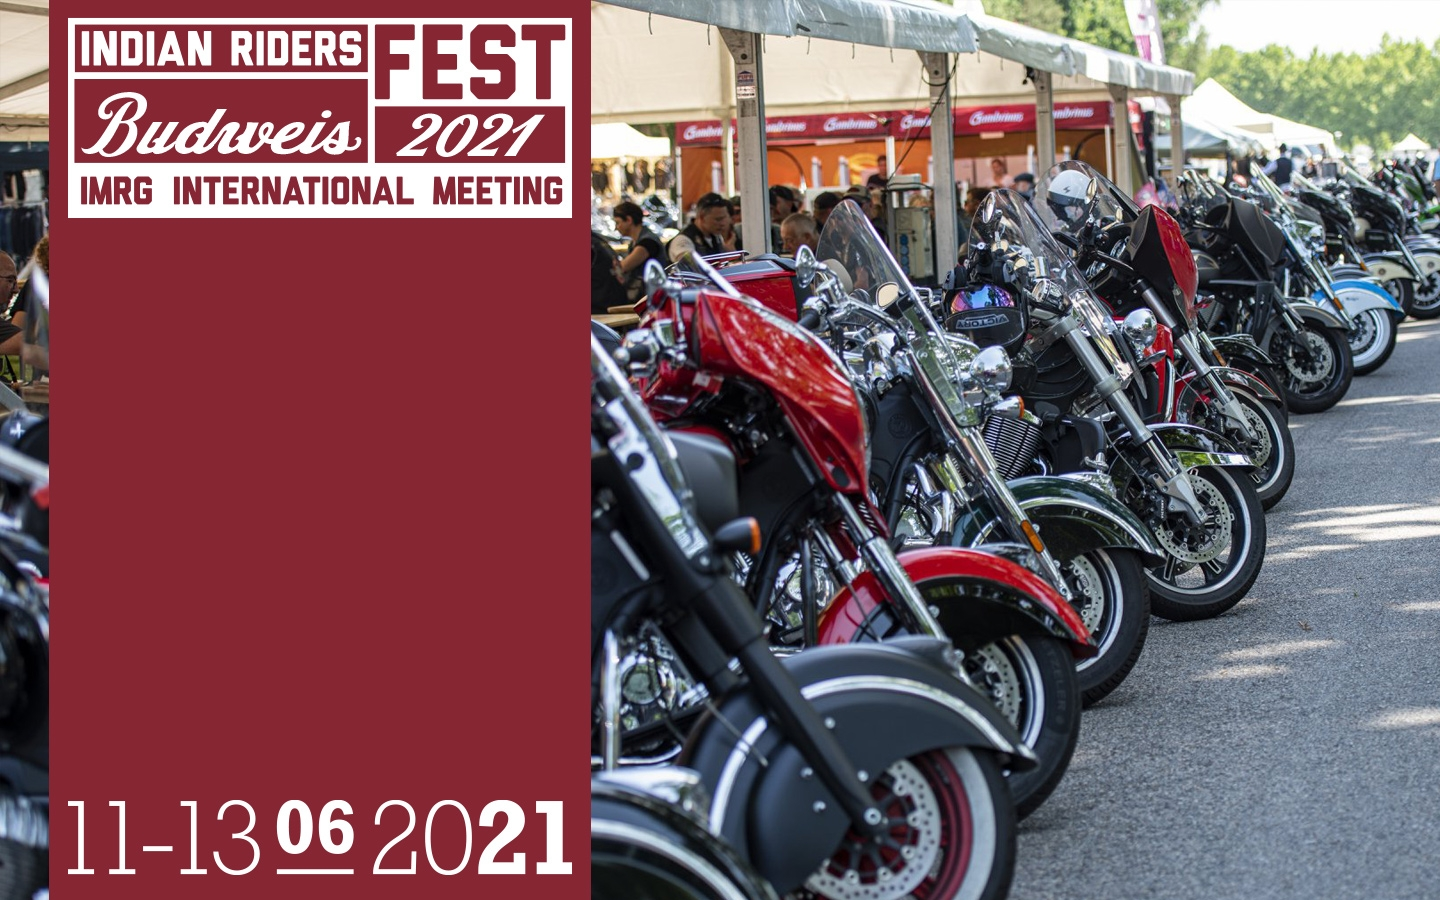 L'INDIAN RIDERS FEST 2020 REPORTÉ À 2021